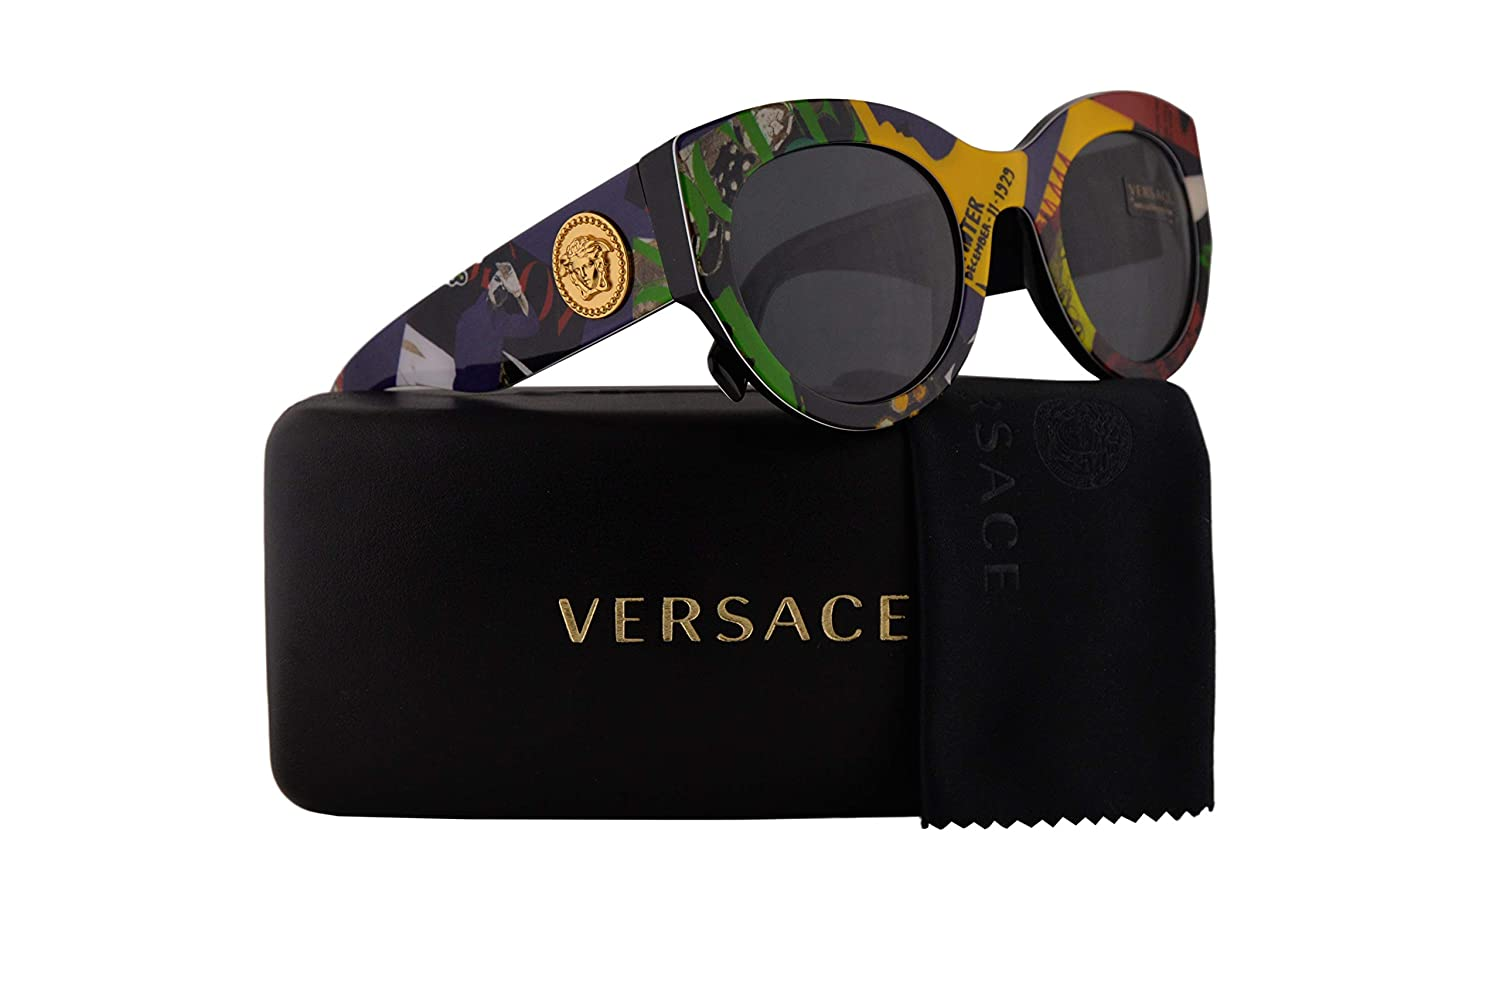 Versace VE4353 Sunglasses Print Vouge Black w/Grey Lens 51mm 528587 VE 4353